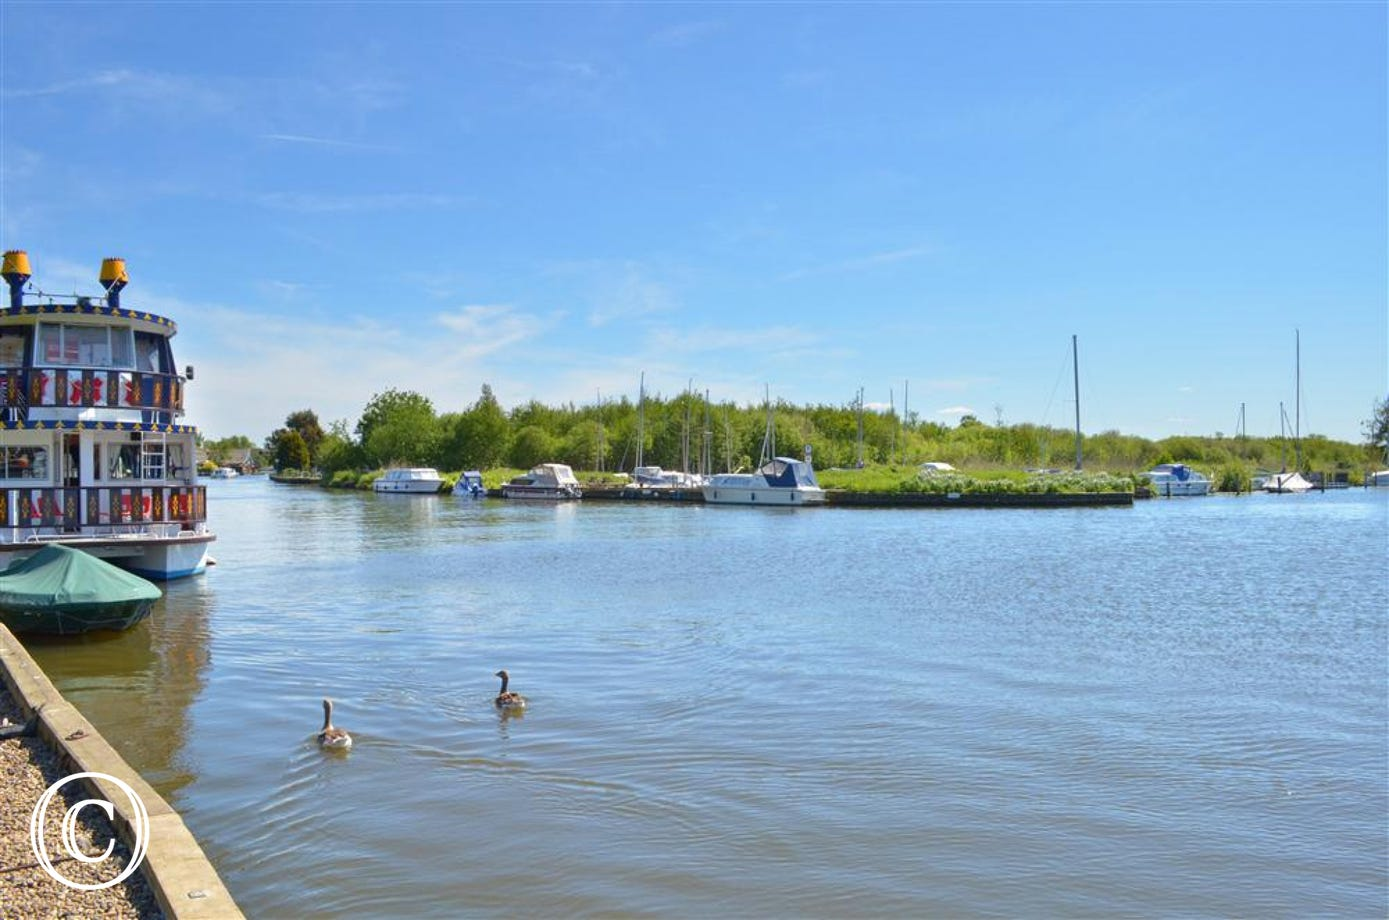 View of Horning Broad, with the boats moored to the side.